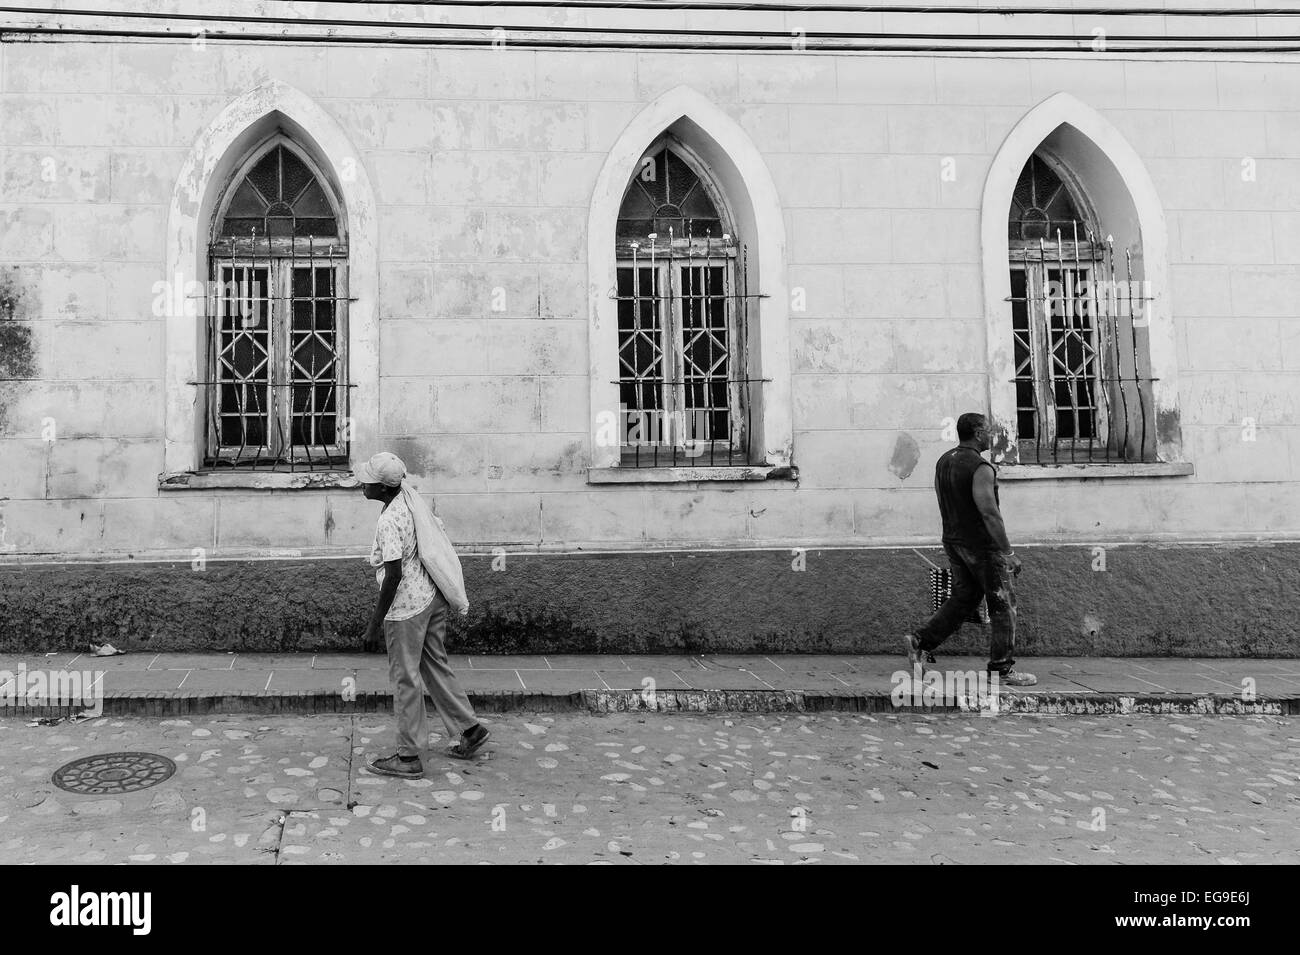 Two Cuban people walk past a building with three arched windows. - Stock Image